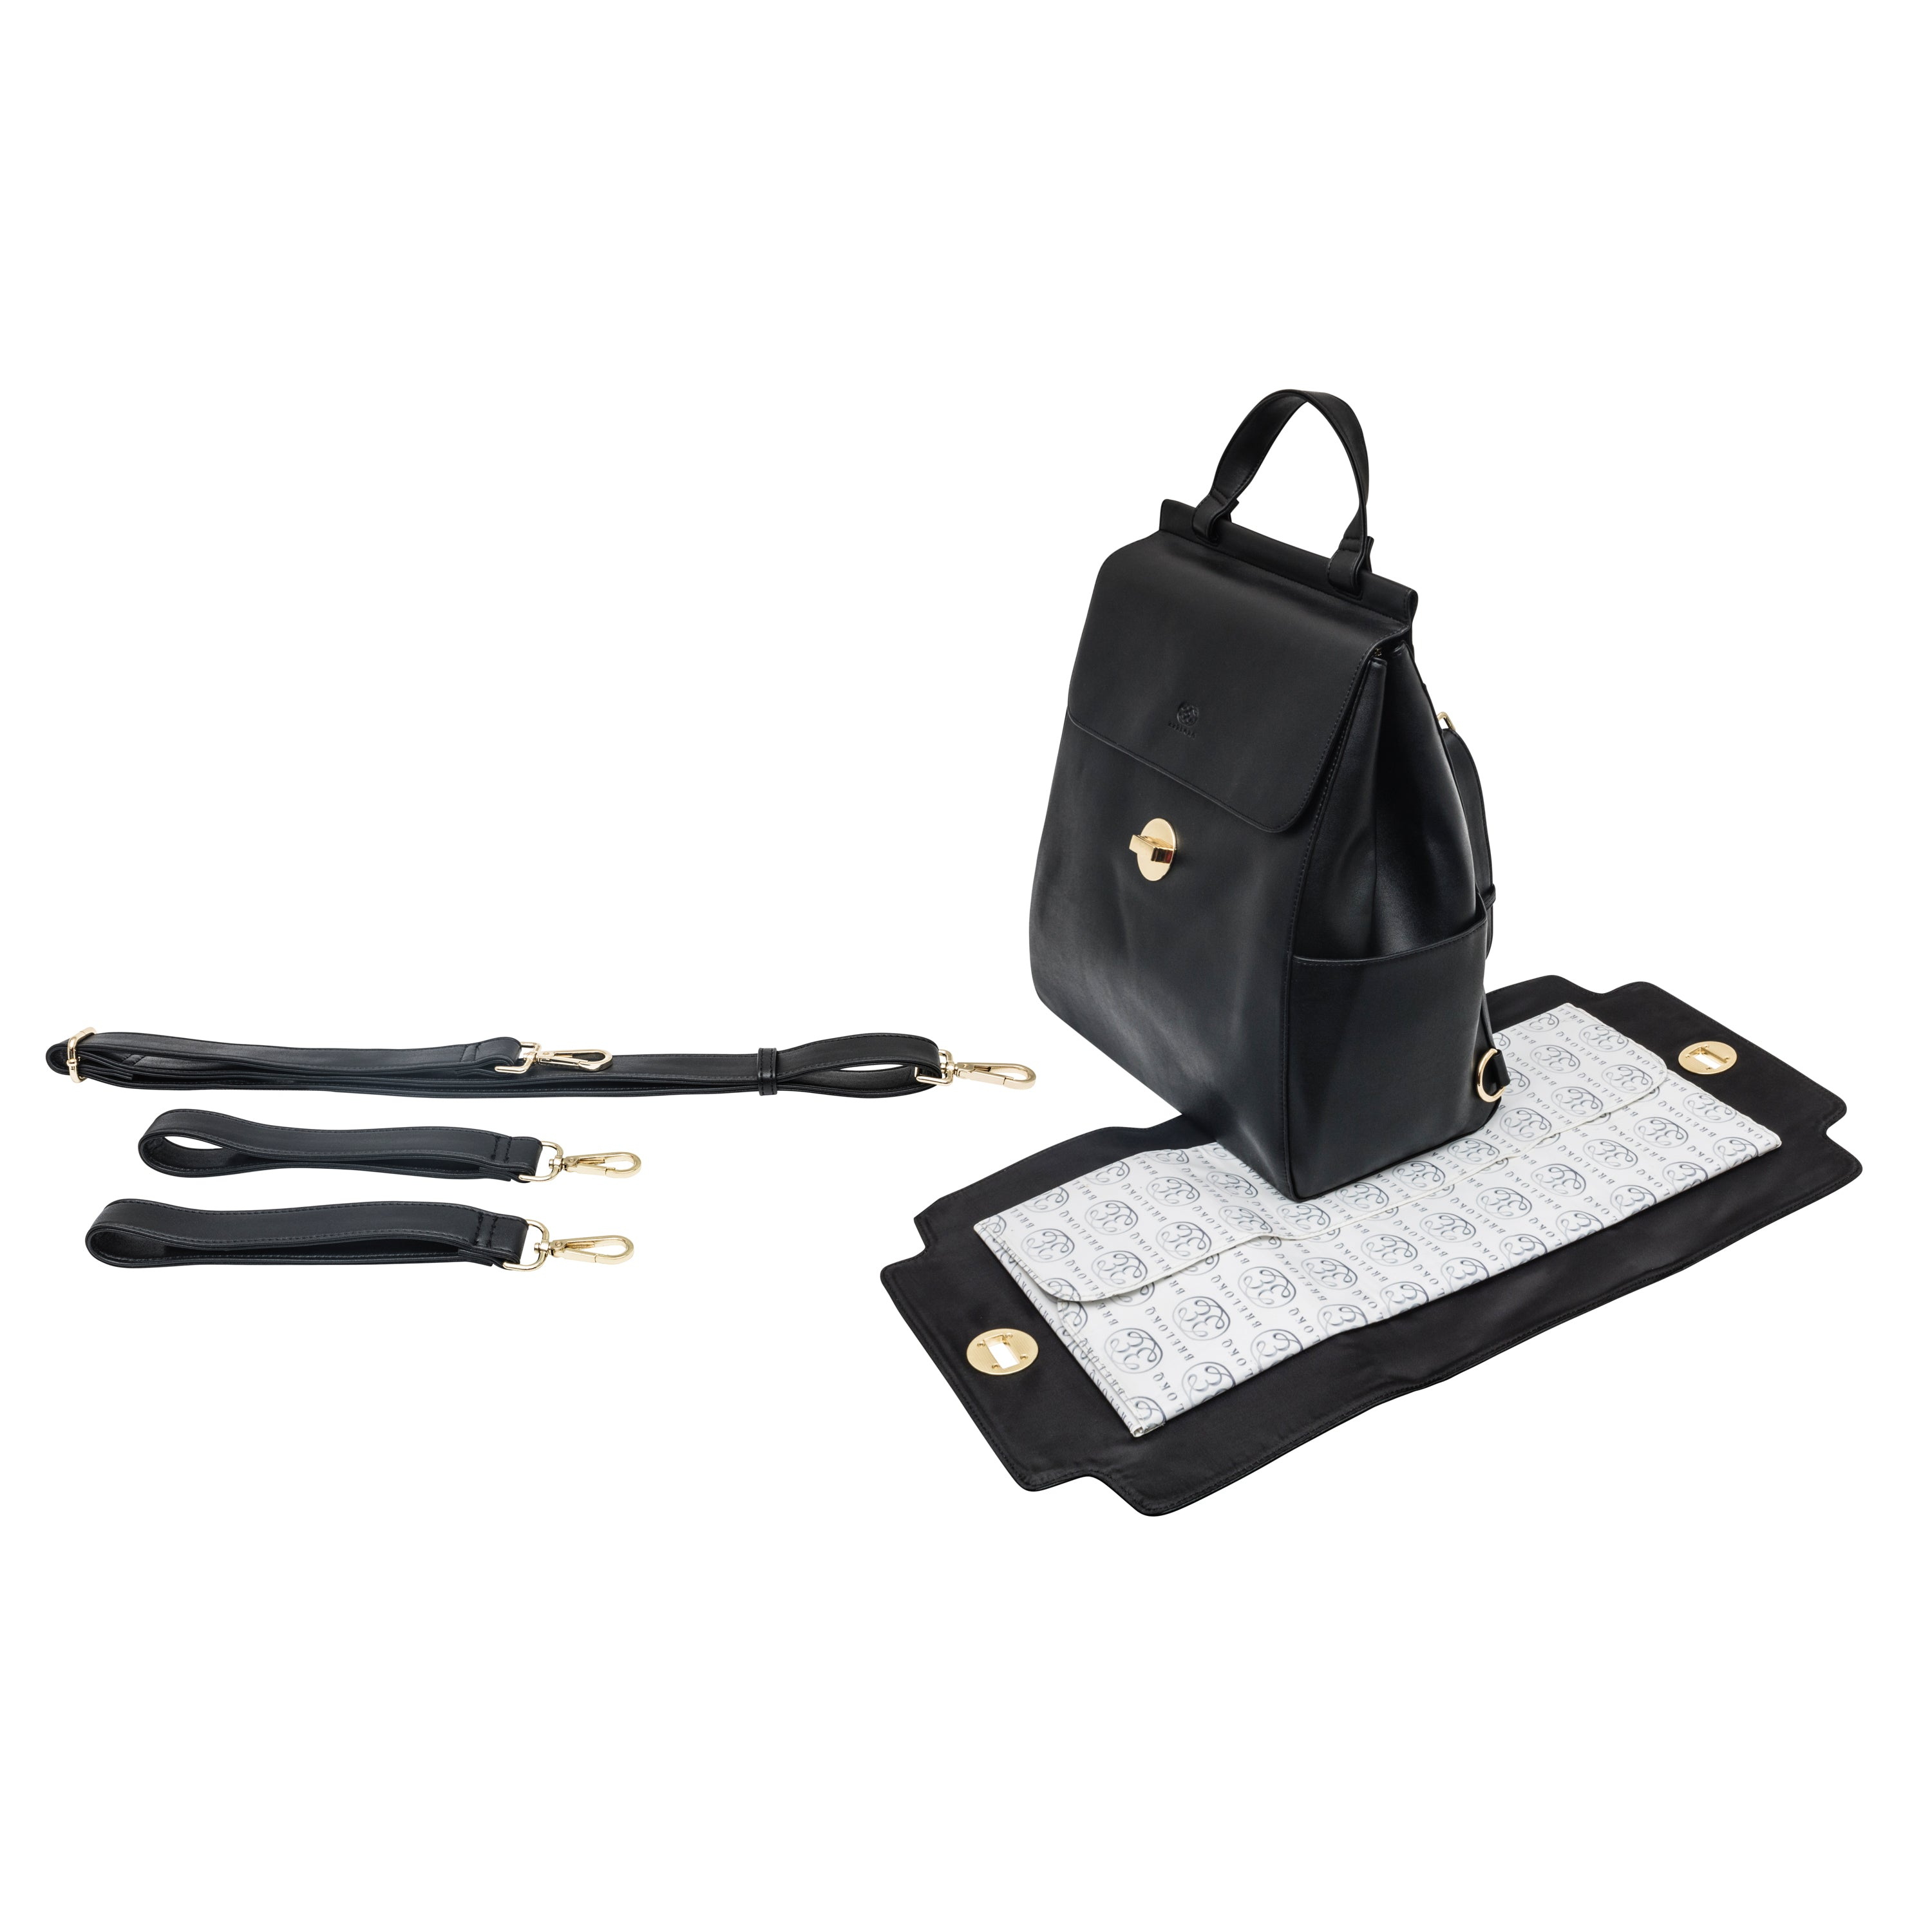 fashion diaper bag with a changing station installed on the exterior and that is completely detachable